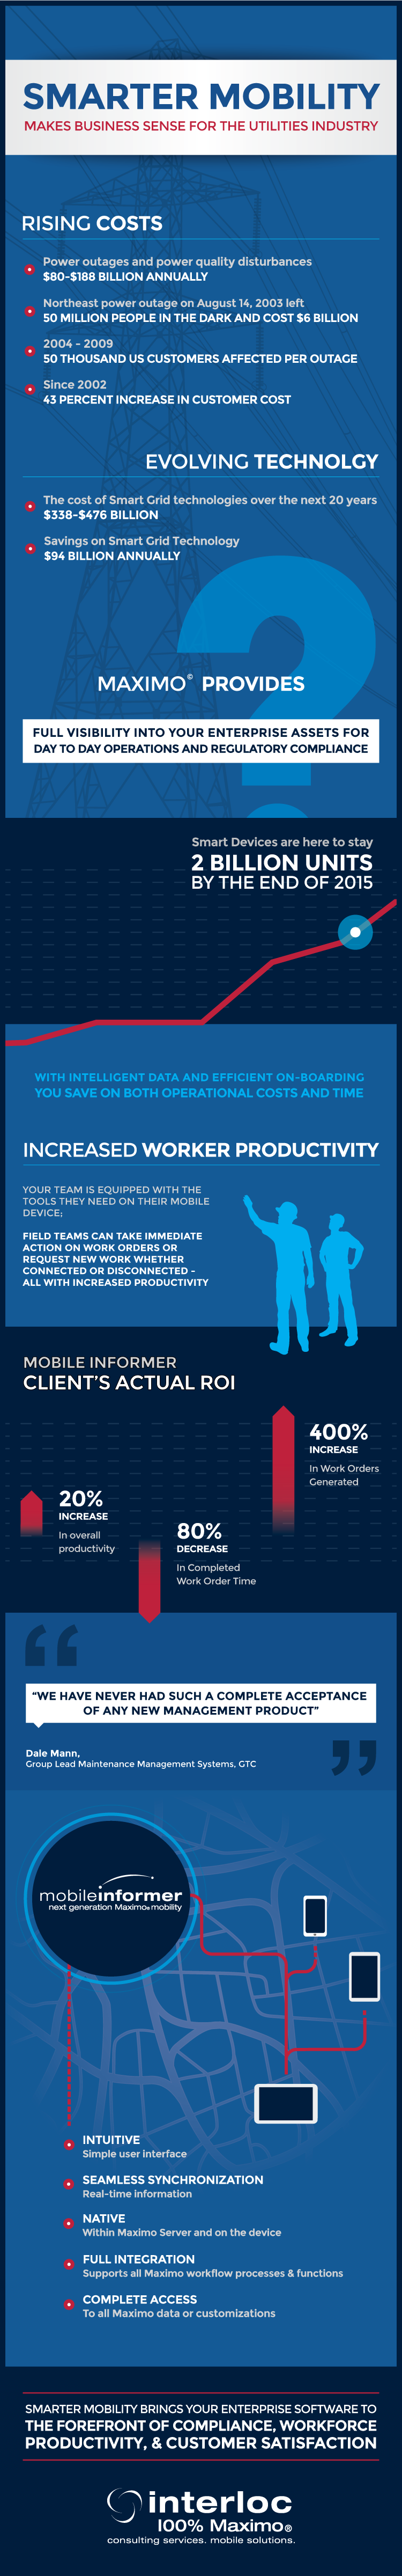 Smarter Maximo Mobility for the Utilities Industry